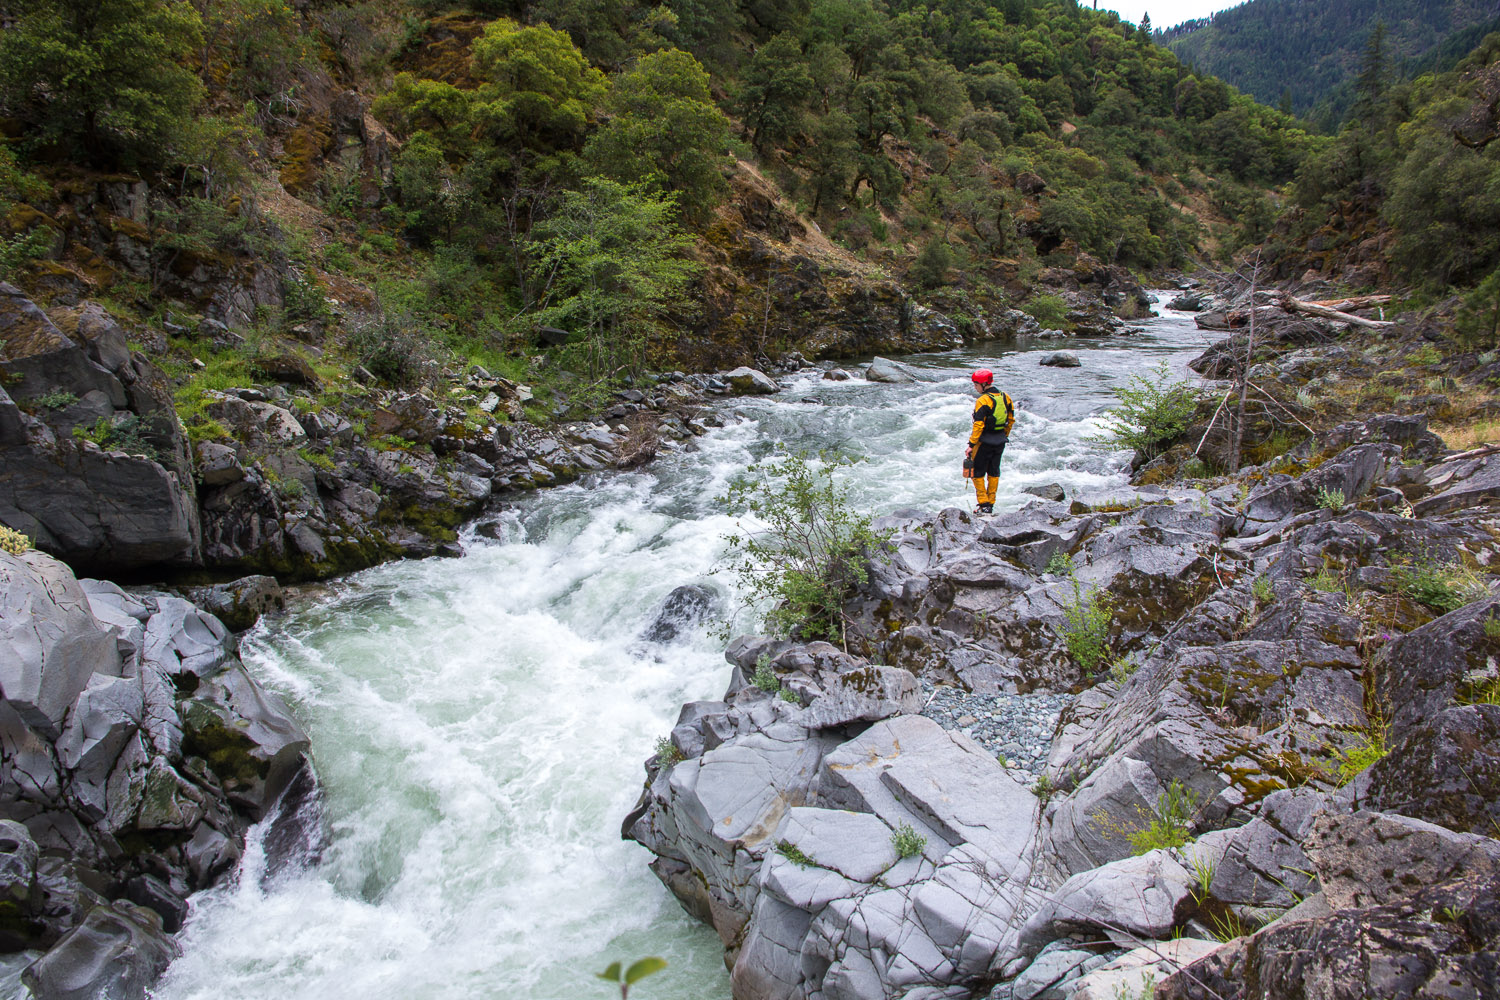 Scouting the entrance to what I believe was Amusement Park on the South Fork of the Cal Salmon. PC: Jordan Sherman